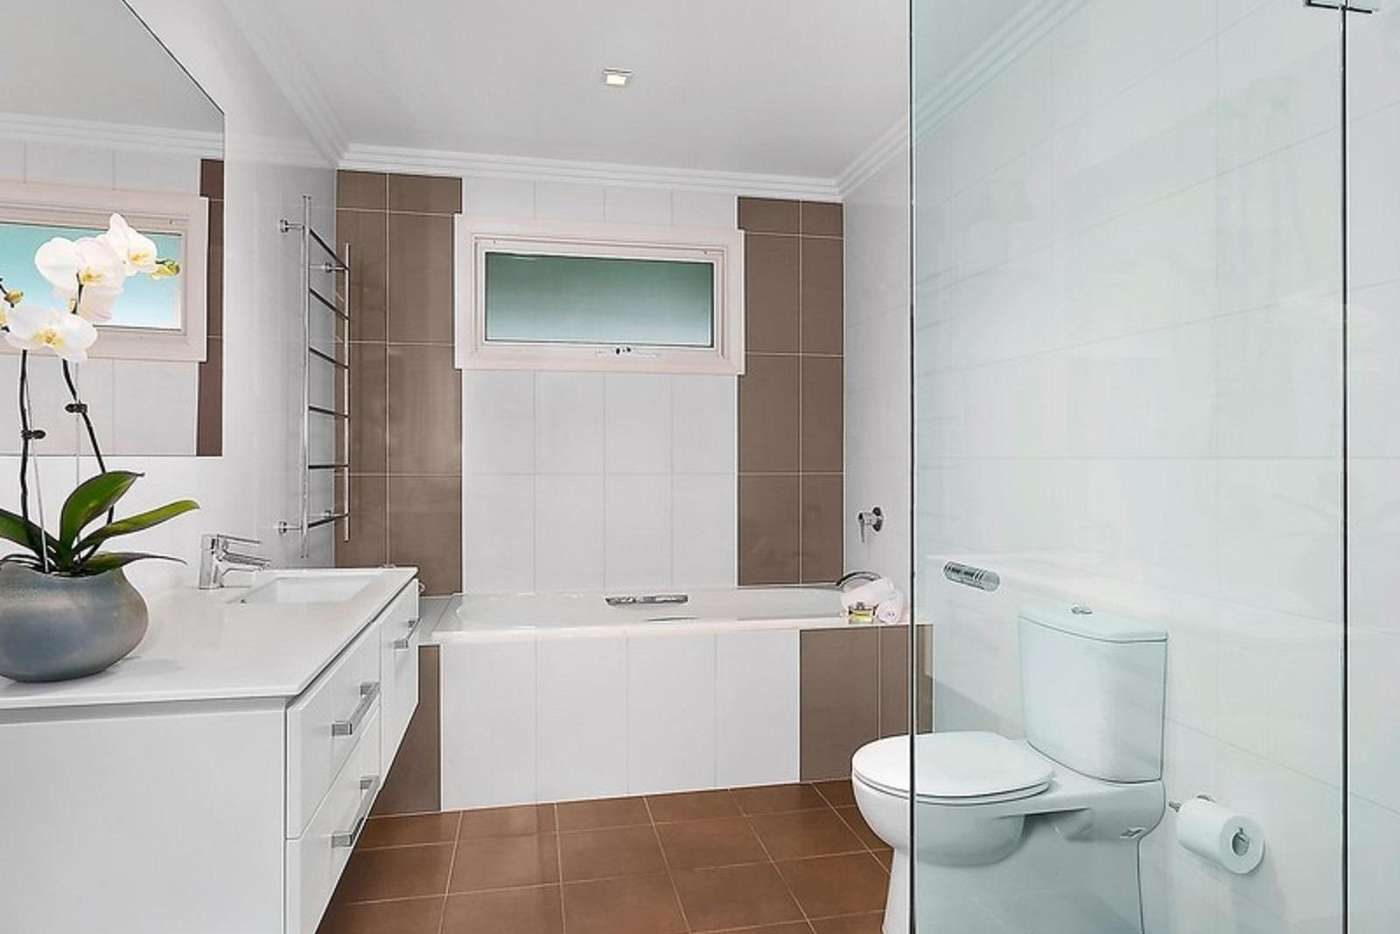 Sixth view of Homely house listing, 10 Windeyer Avenue, Gladesville NSW 2111